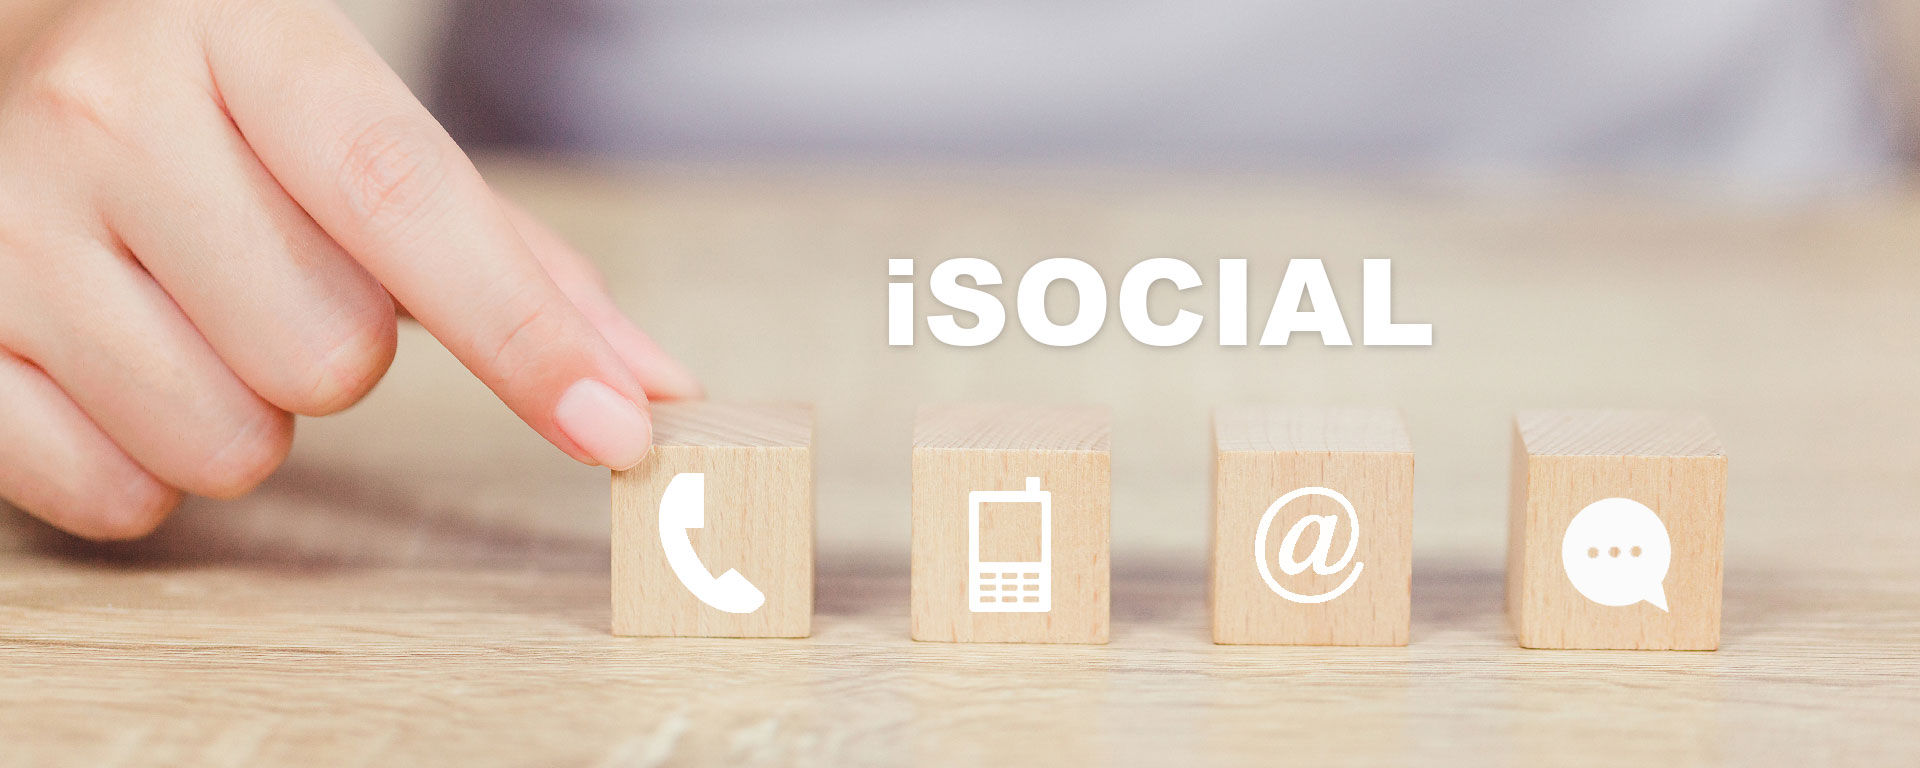 2073-isocial-contact-b